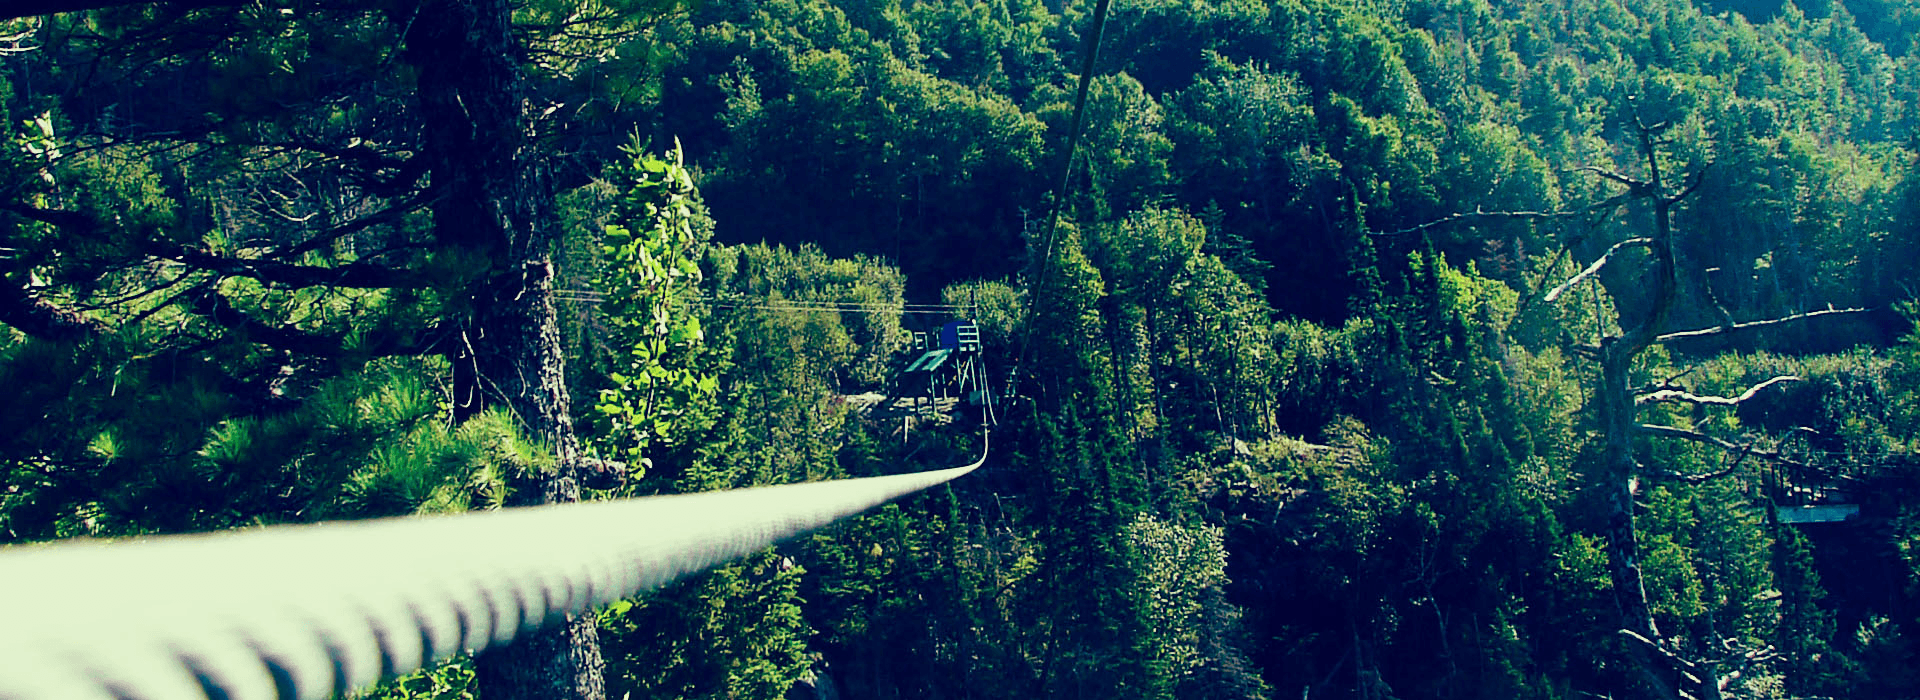 tree top adventures in the mountains header